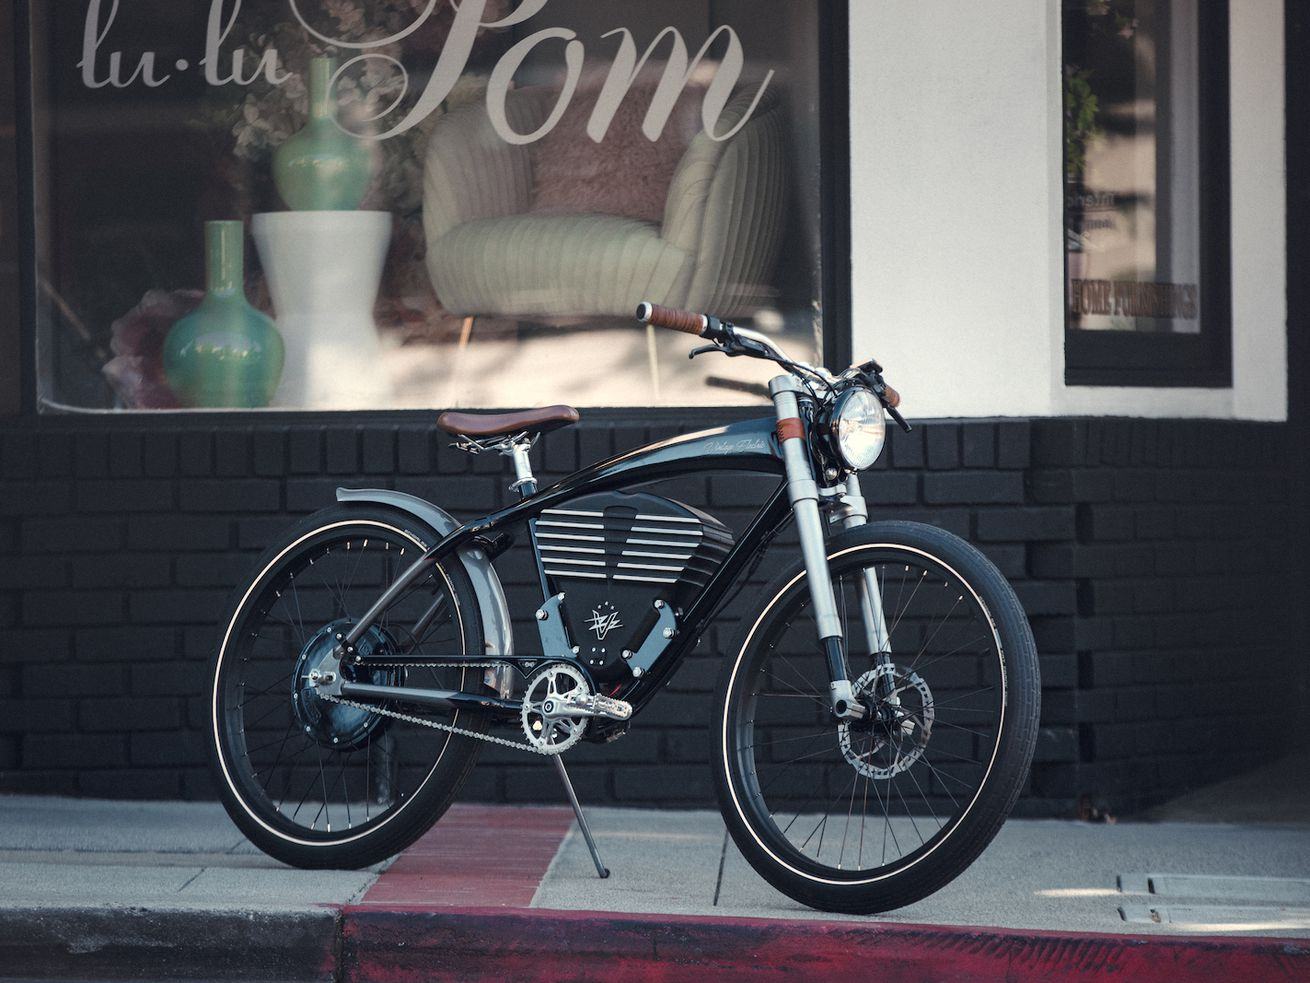 Suave electric bike with swoopy black frame parked on a sidewalk in front of a store.